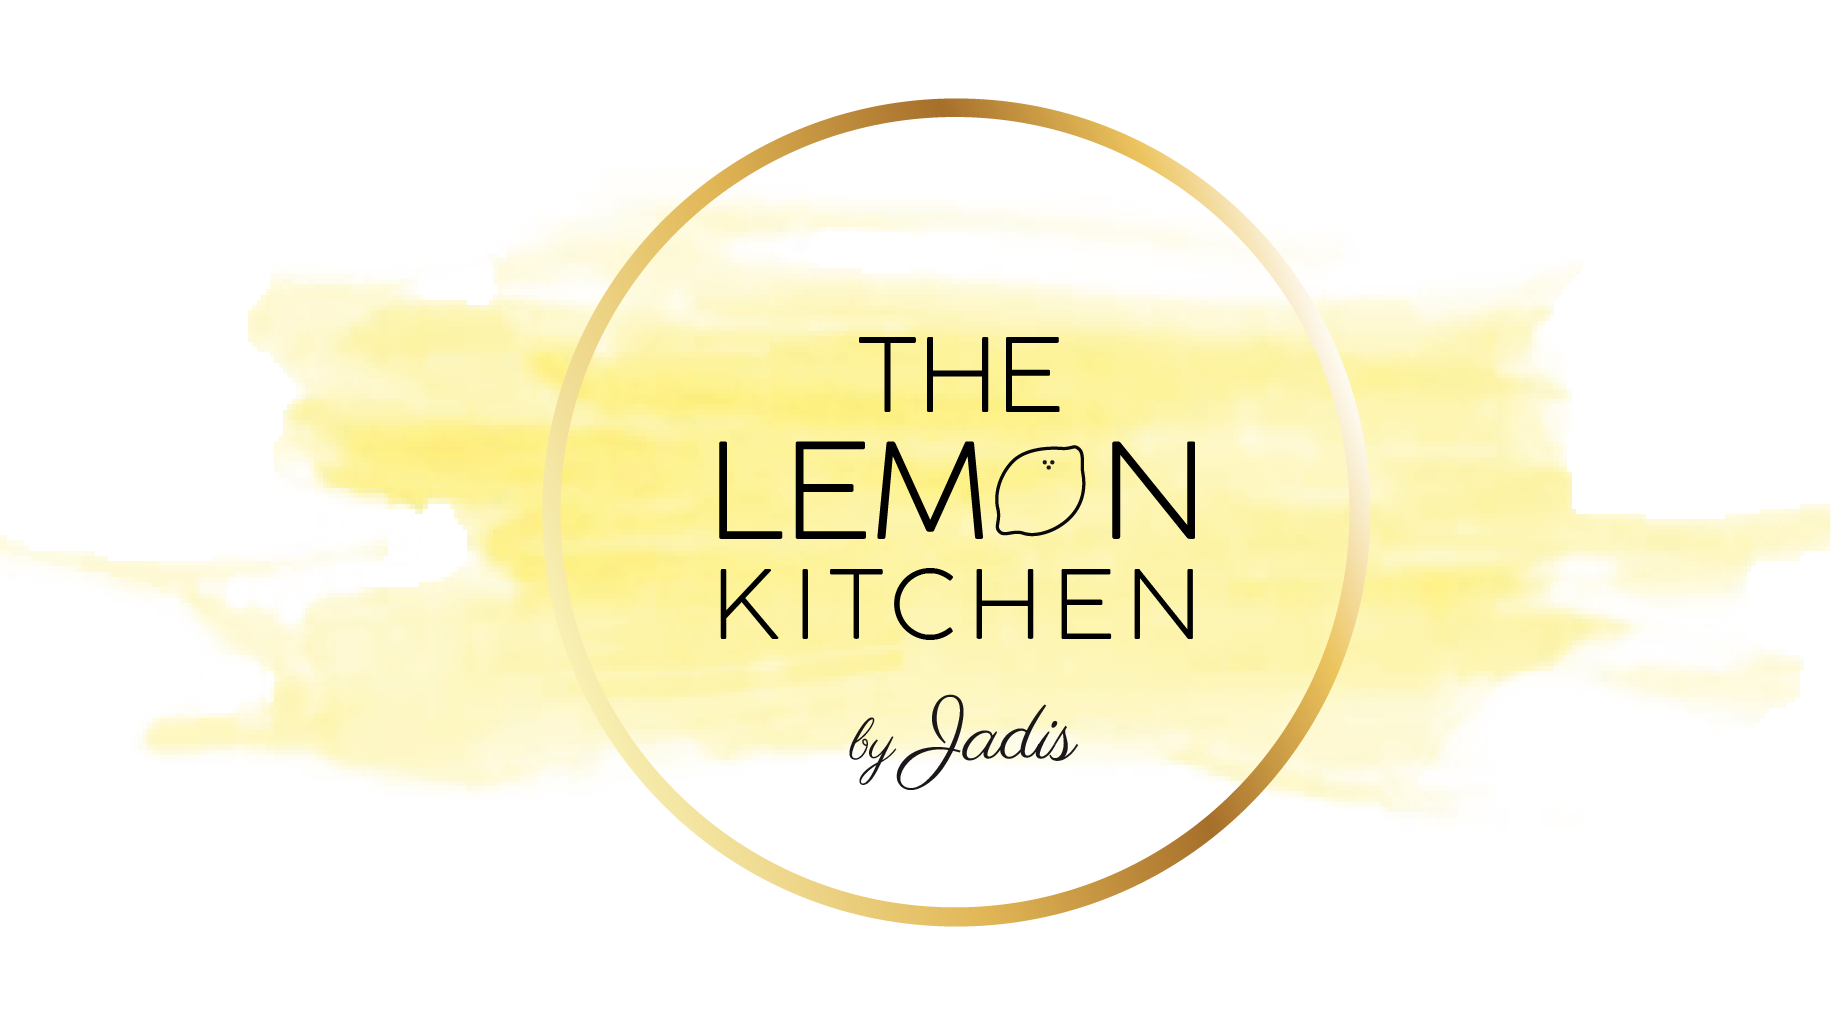 The Lemon Kitchen